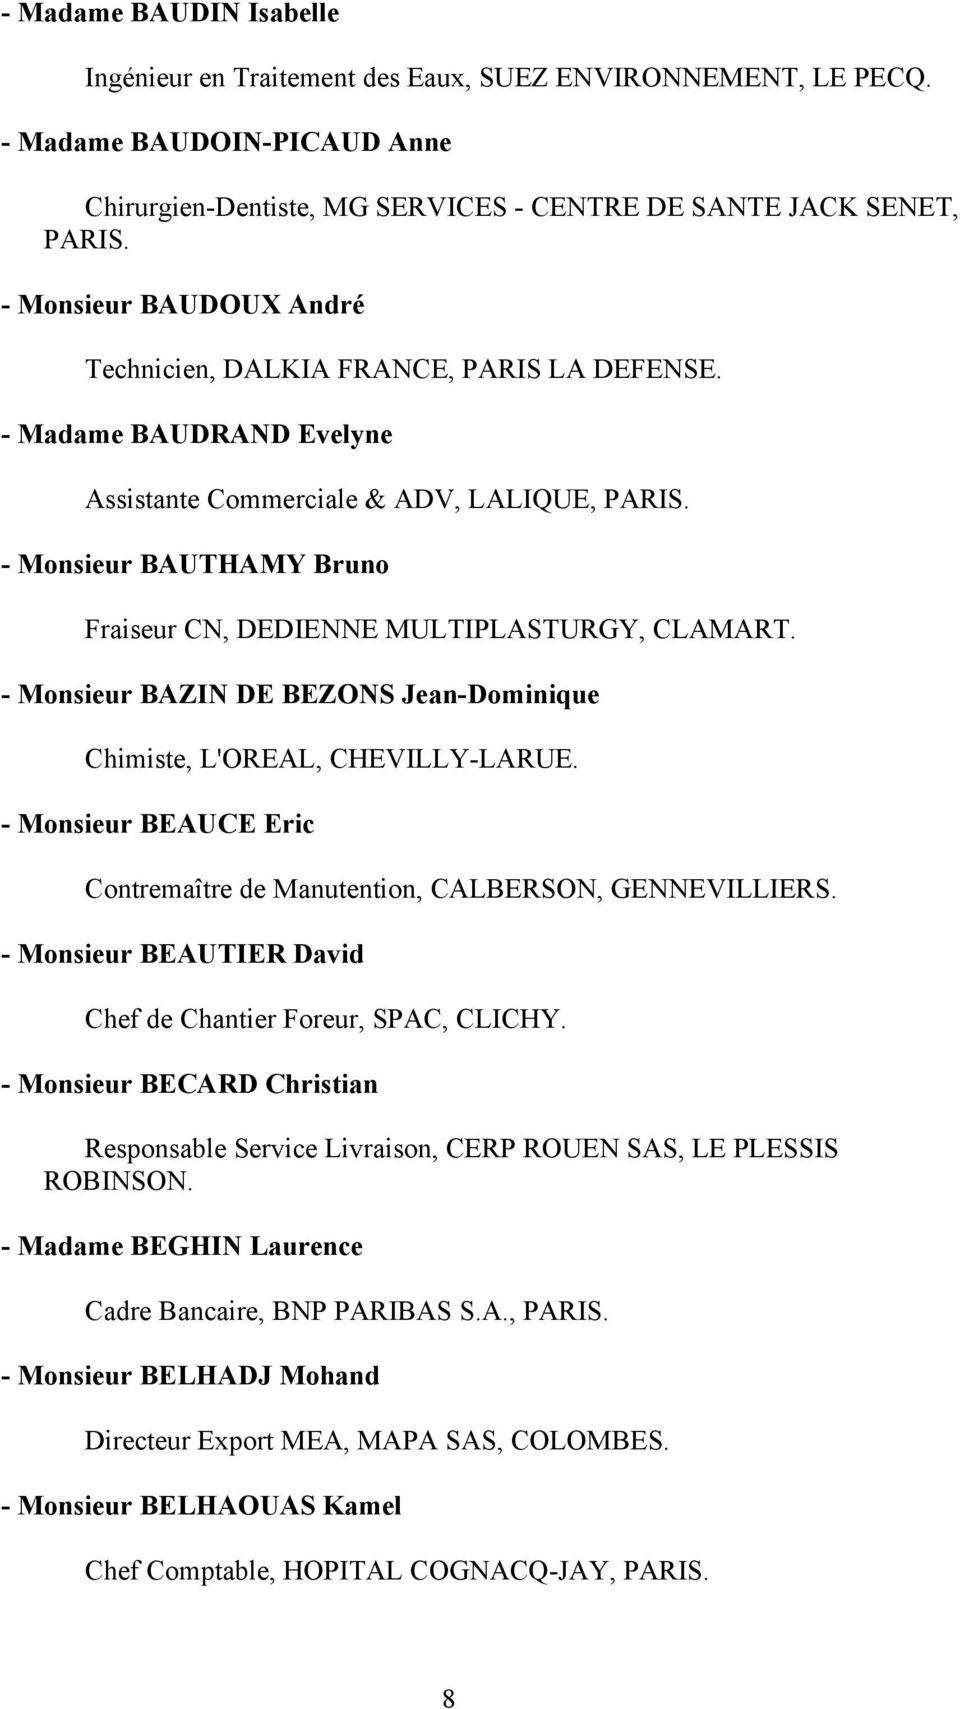 - Monsieur BAUTHAMY Bruno Fraiseur CN, DEDIENNE MULTIPLASTURGY, CLAMART. - Monsieur BAZIN DE BEZONS Jean-Dominique Chimiste, L'OREAL, CHEVILLY-LARUE.